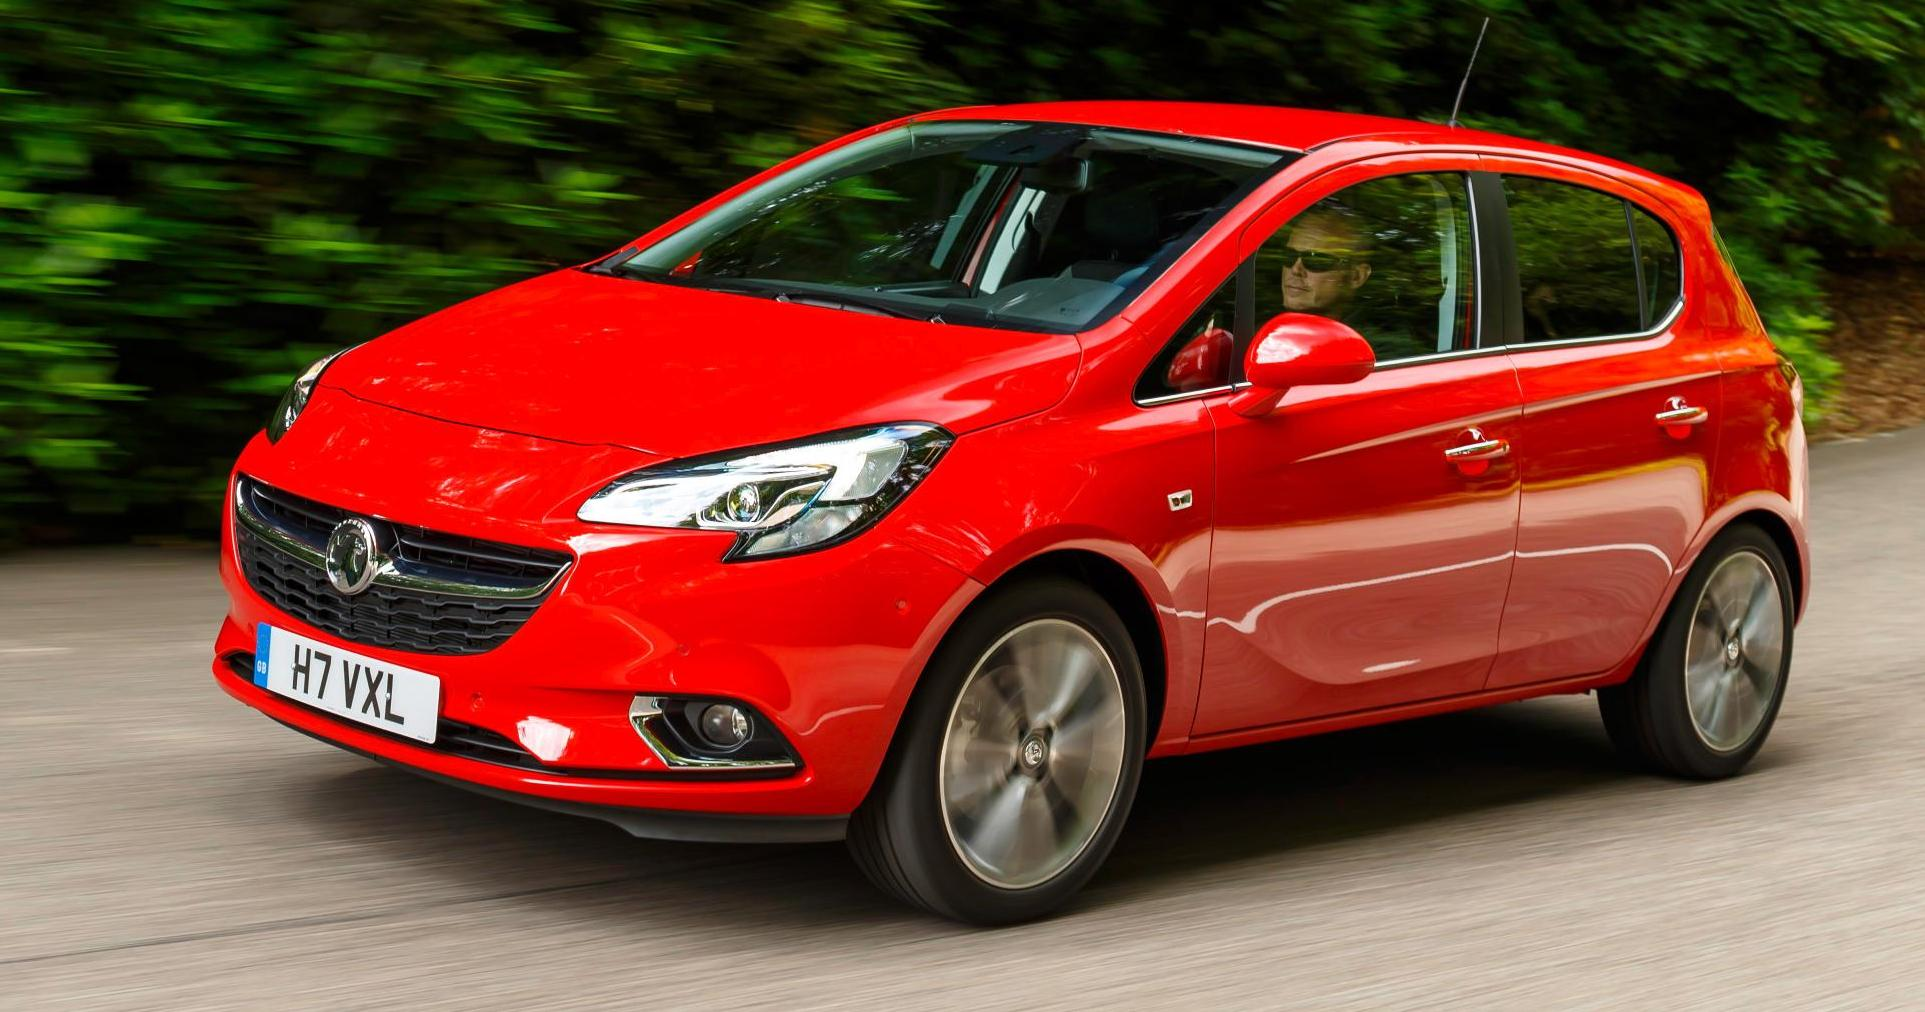 2015-Opel-Corsa-review-price-2.jpg